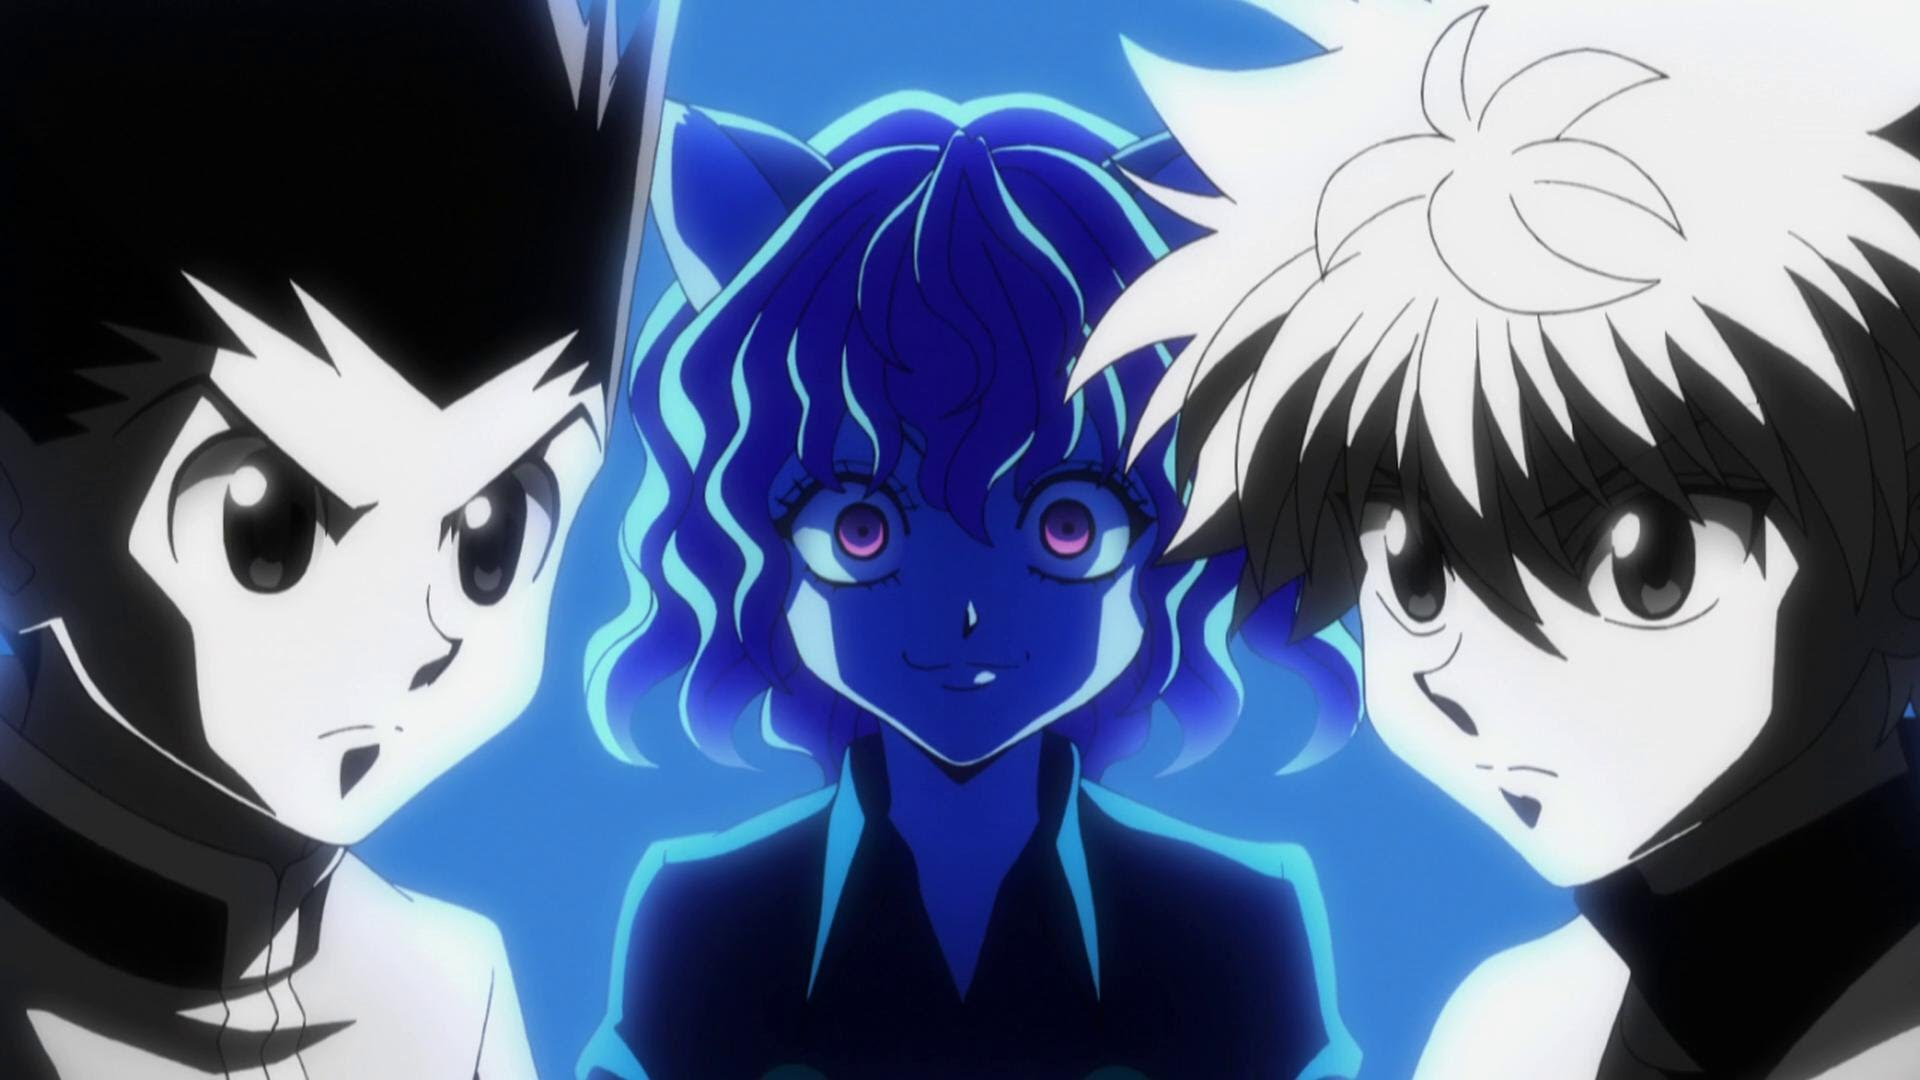 Search more creative png resources with no backgrounds on seekpng. Hunter X Hunter Fond d'écran HD | Image | 1920x1080